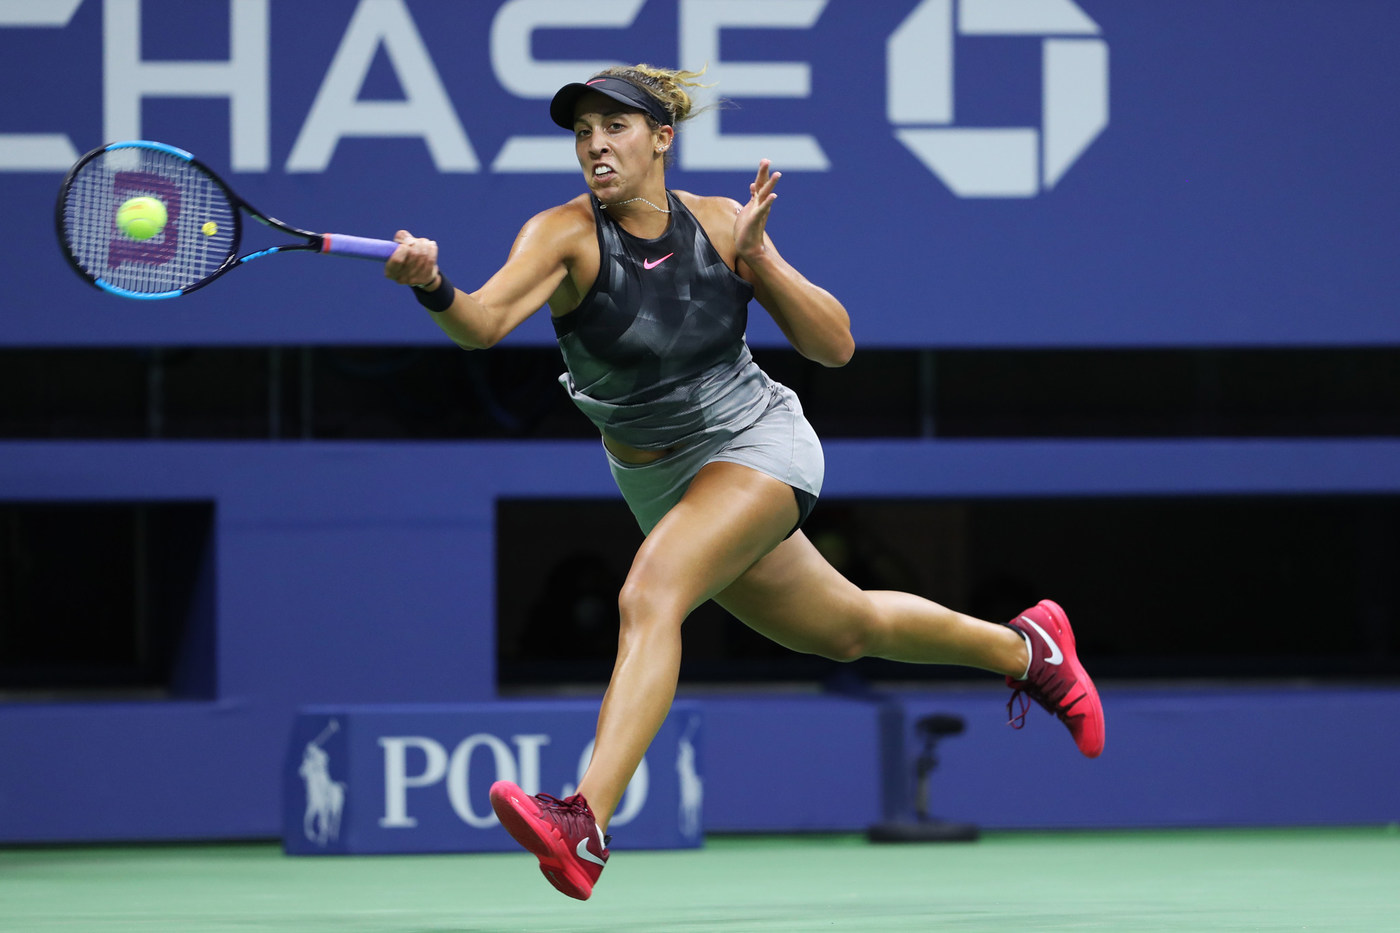 Madison keys s o estes os momentos com que sonhamos for Madison tenis de mesa